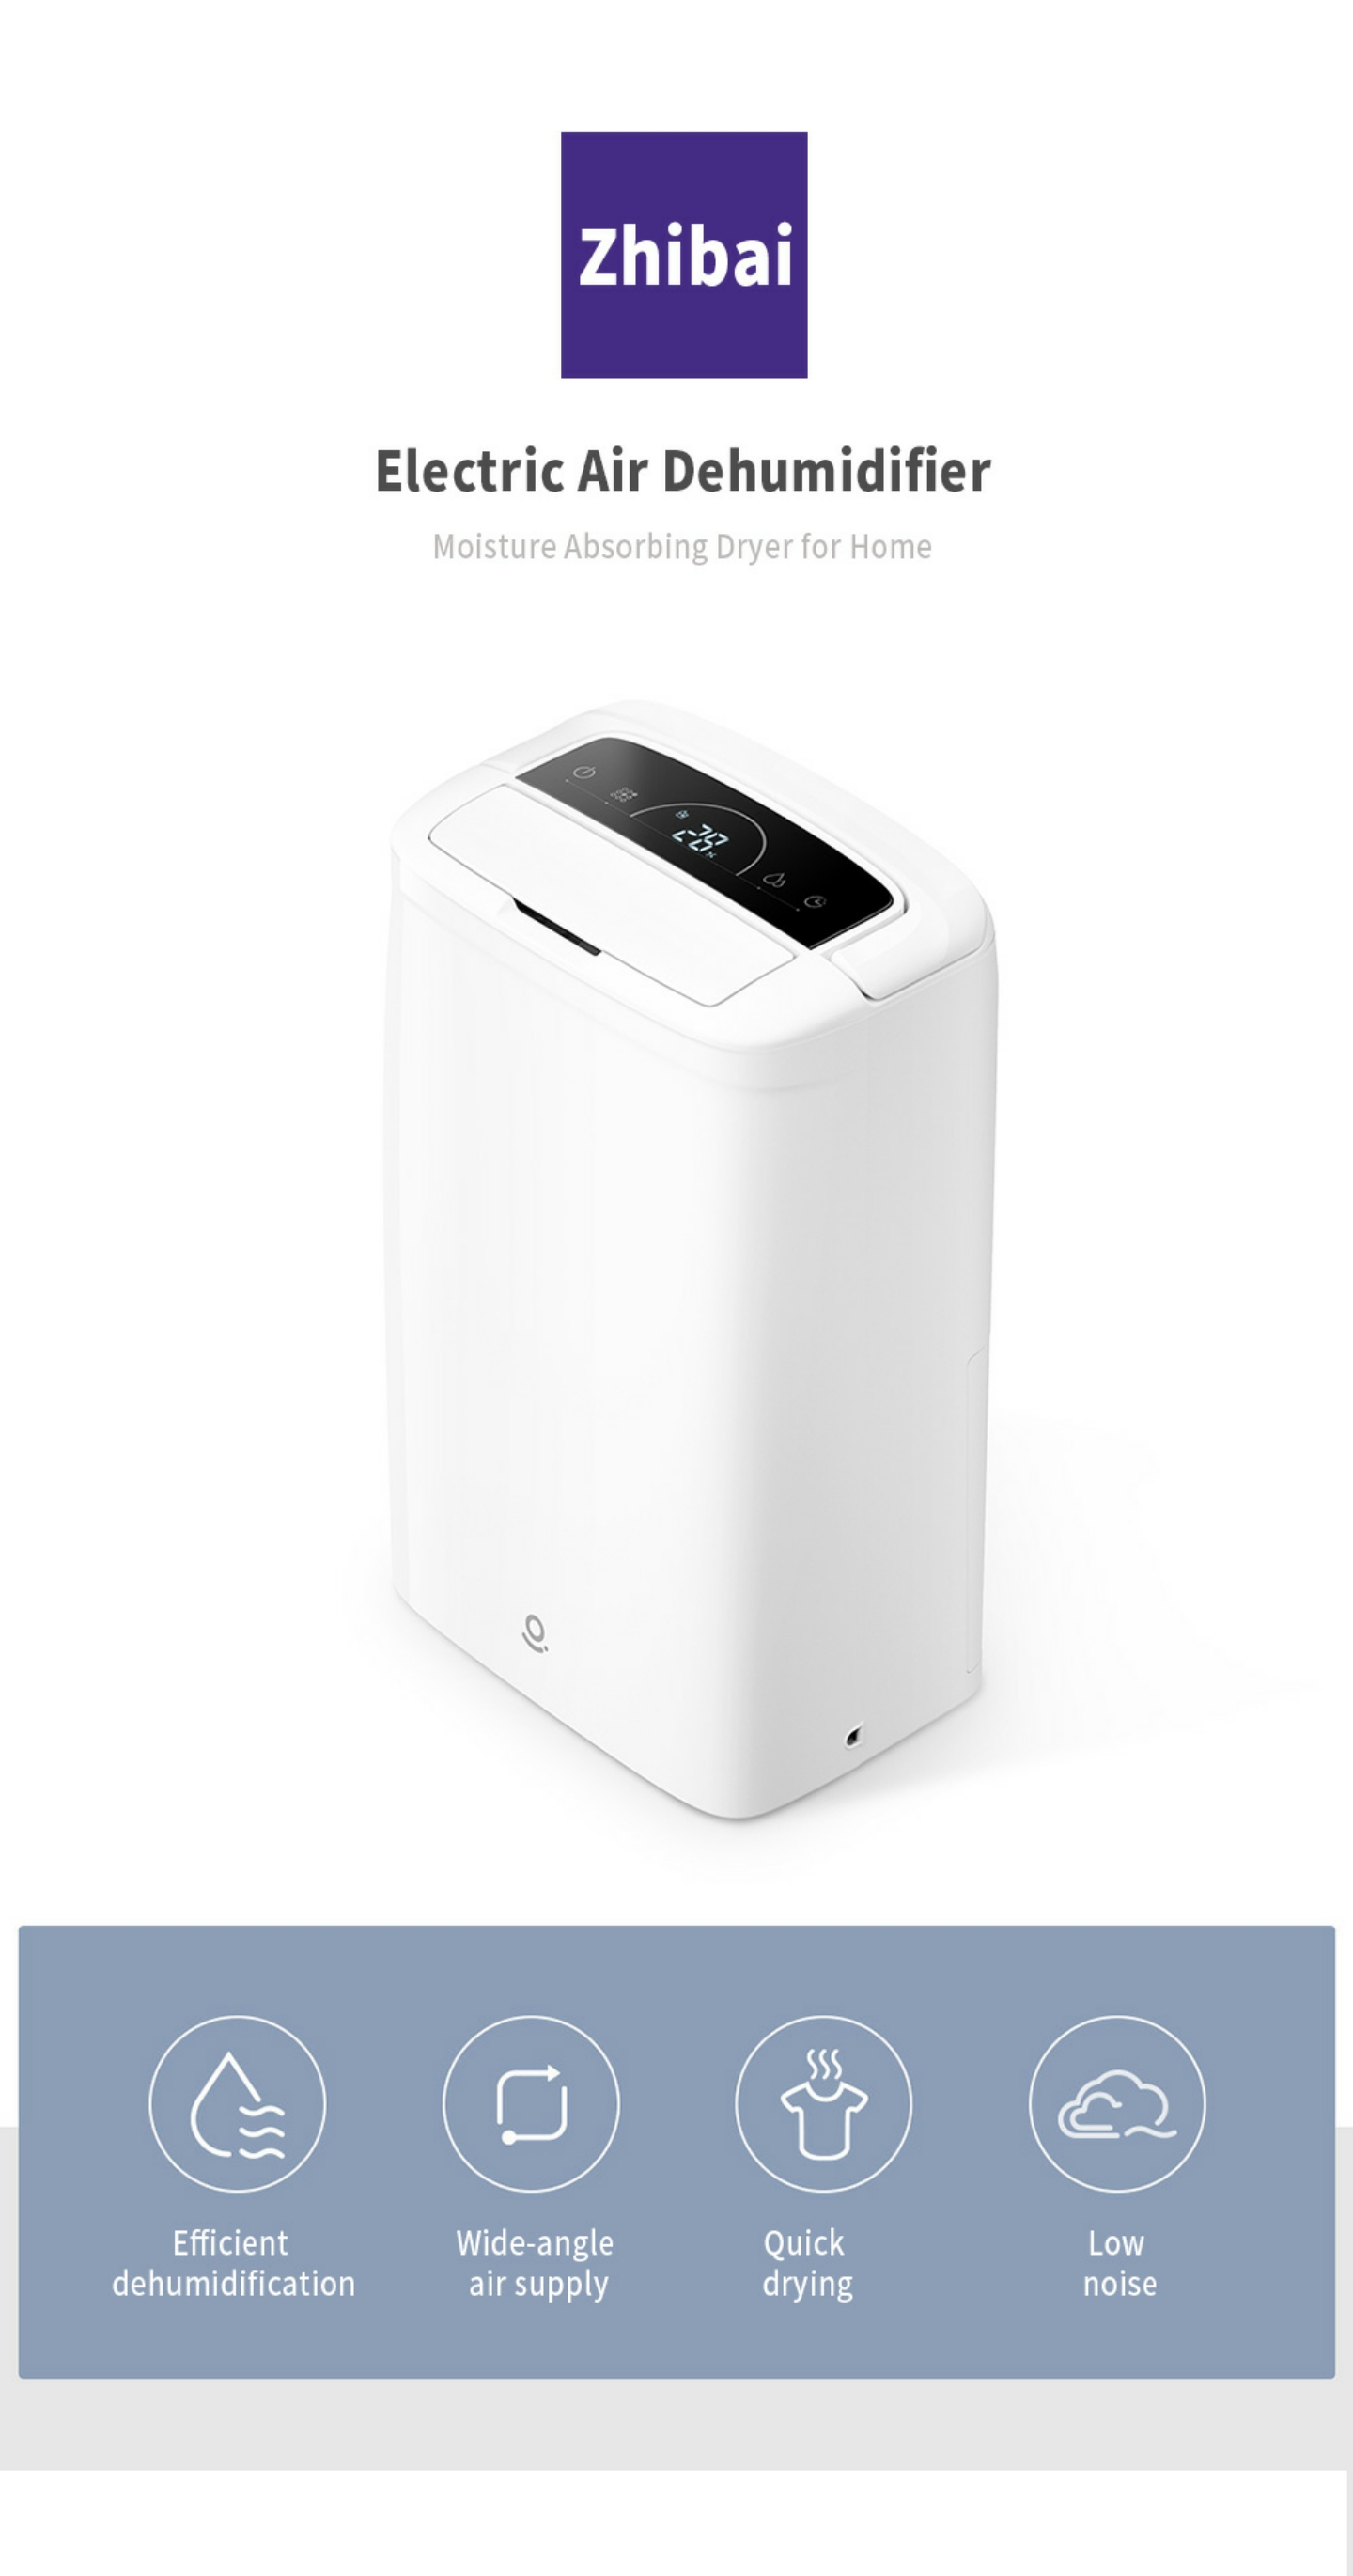 XIAOMI ZHIBAI Portable Electric Air Dehumidifier Low Noise Lightweight LCD Display Automatic Moisture Absorbing Dryer for Home